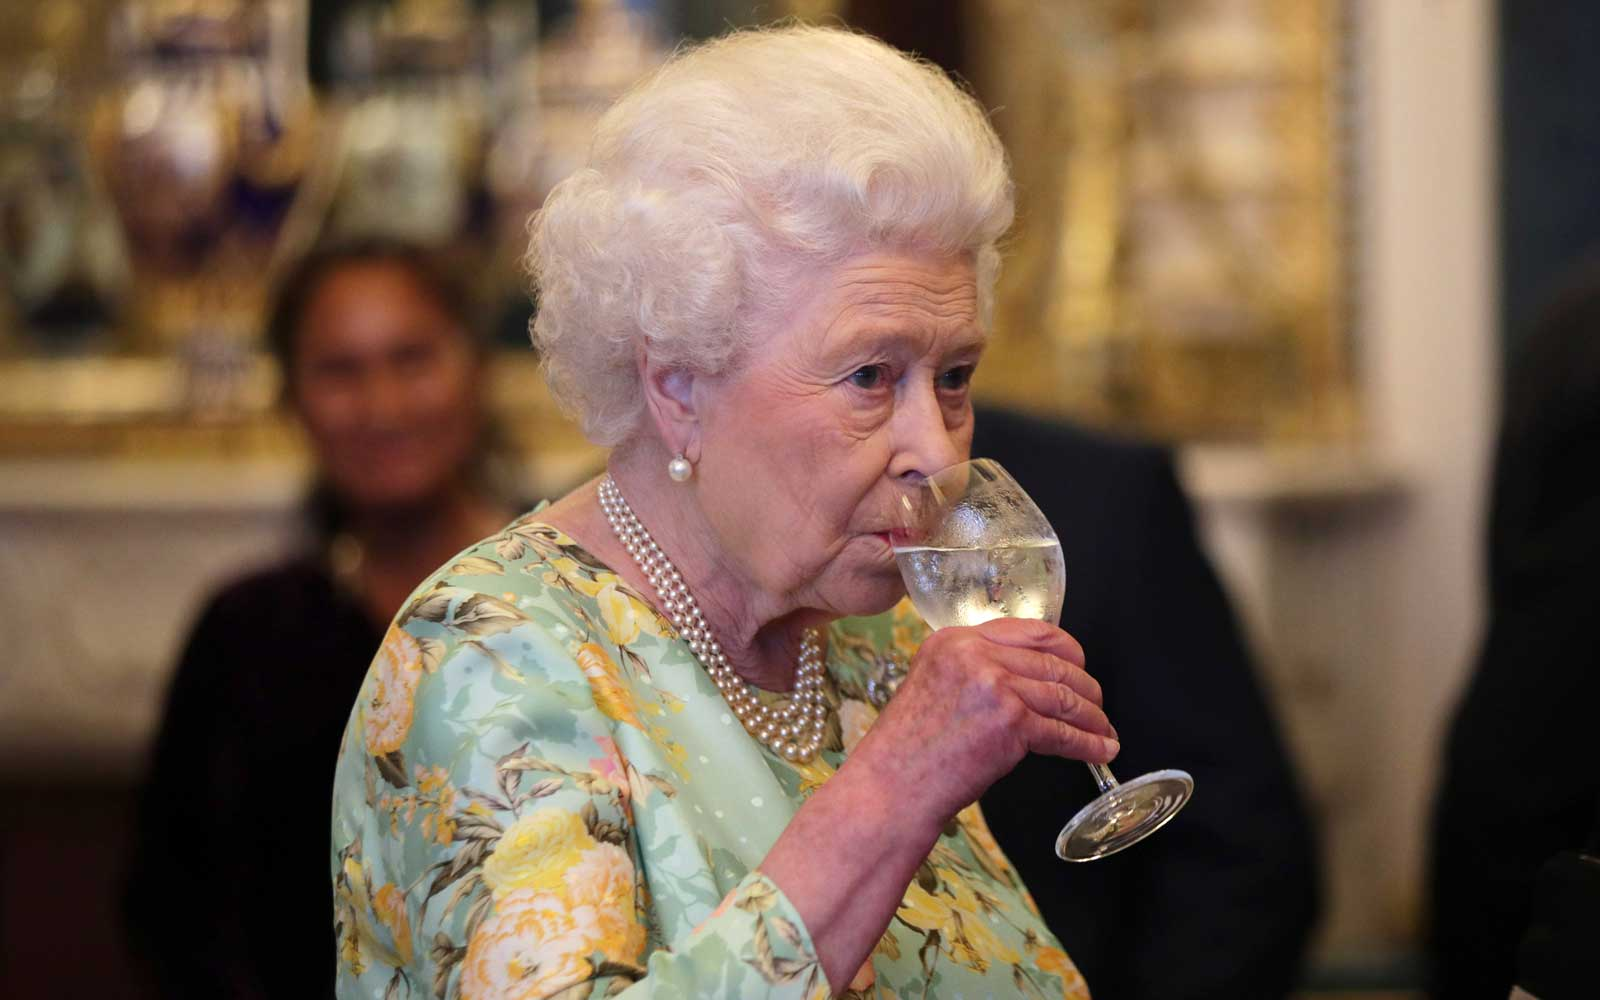 queen-elizabeth-ii-drinks-alcohol0717.jpg